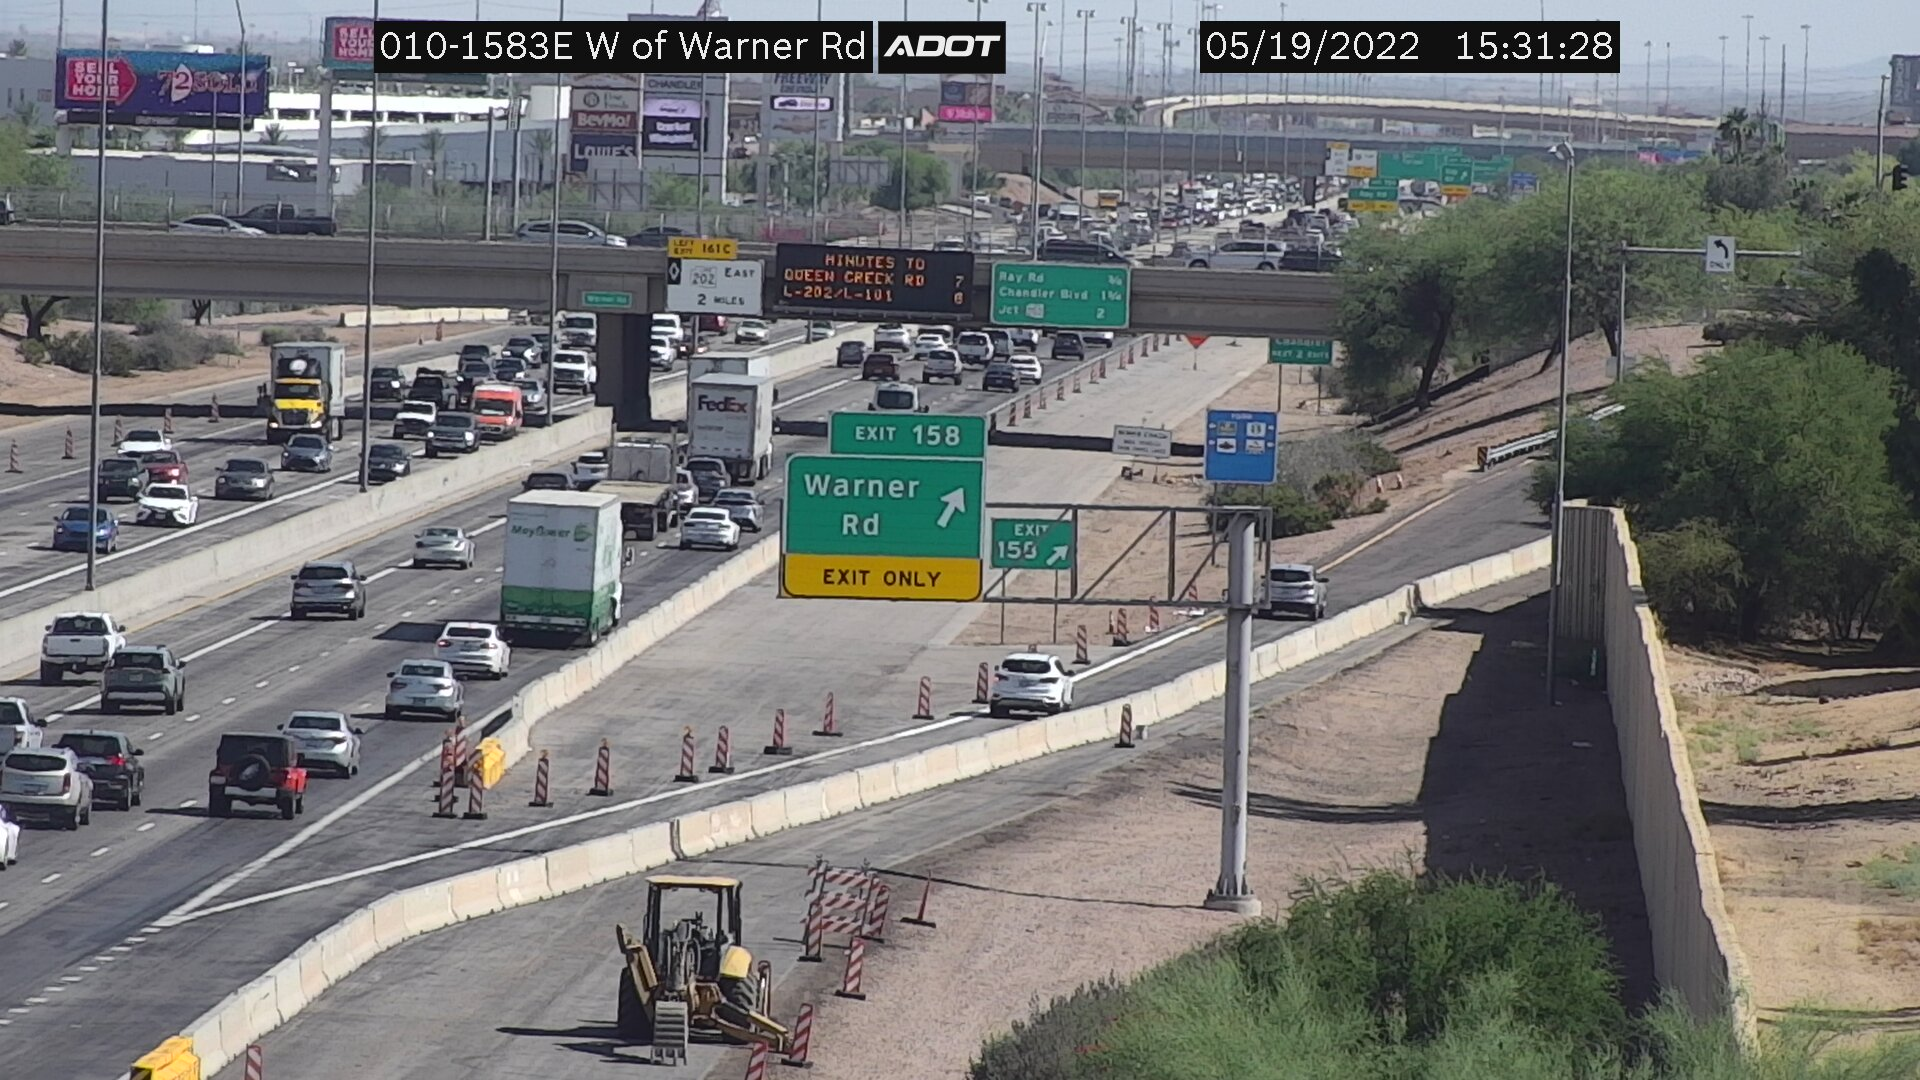 W of Warner EB (I10) (035) - Phoenix and Arizona